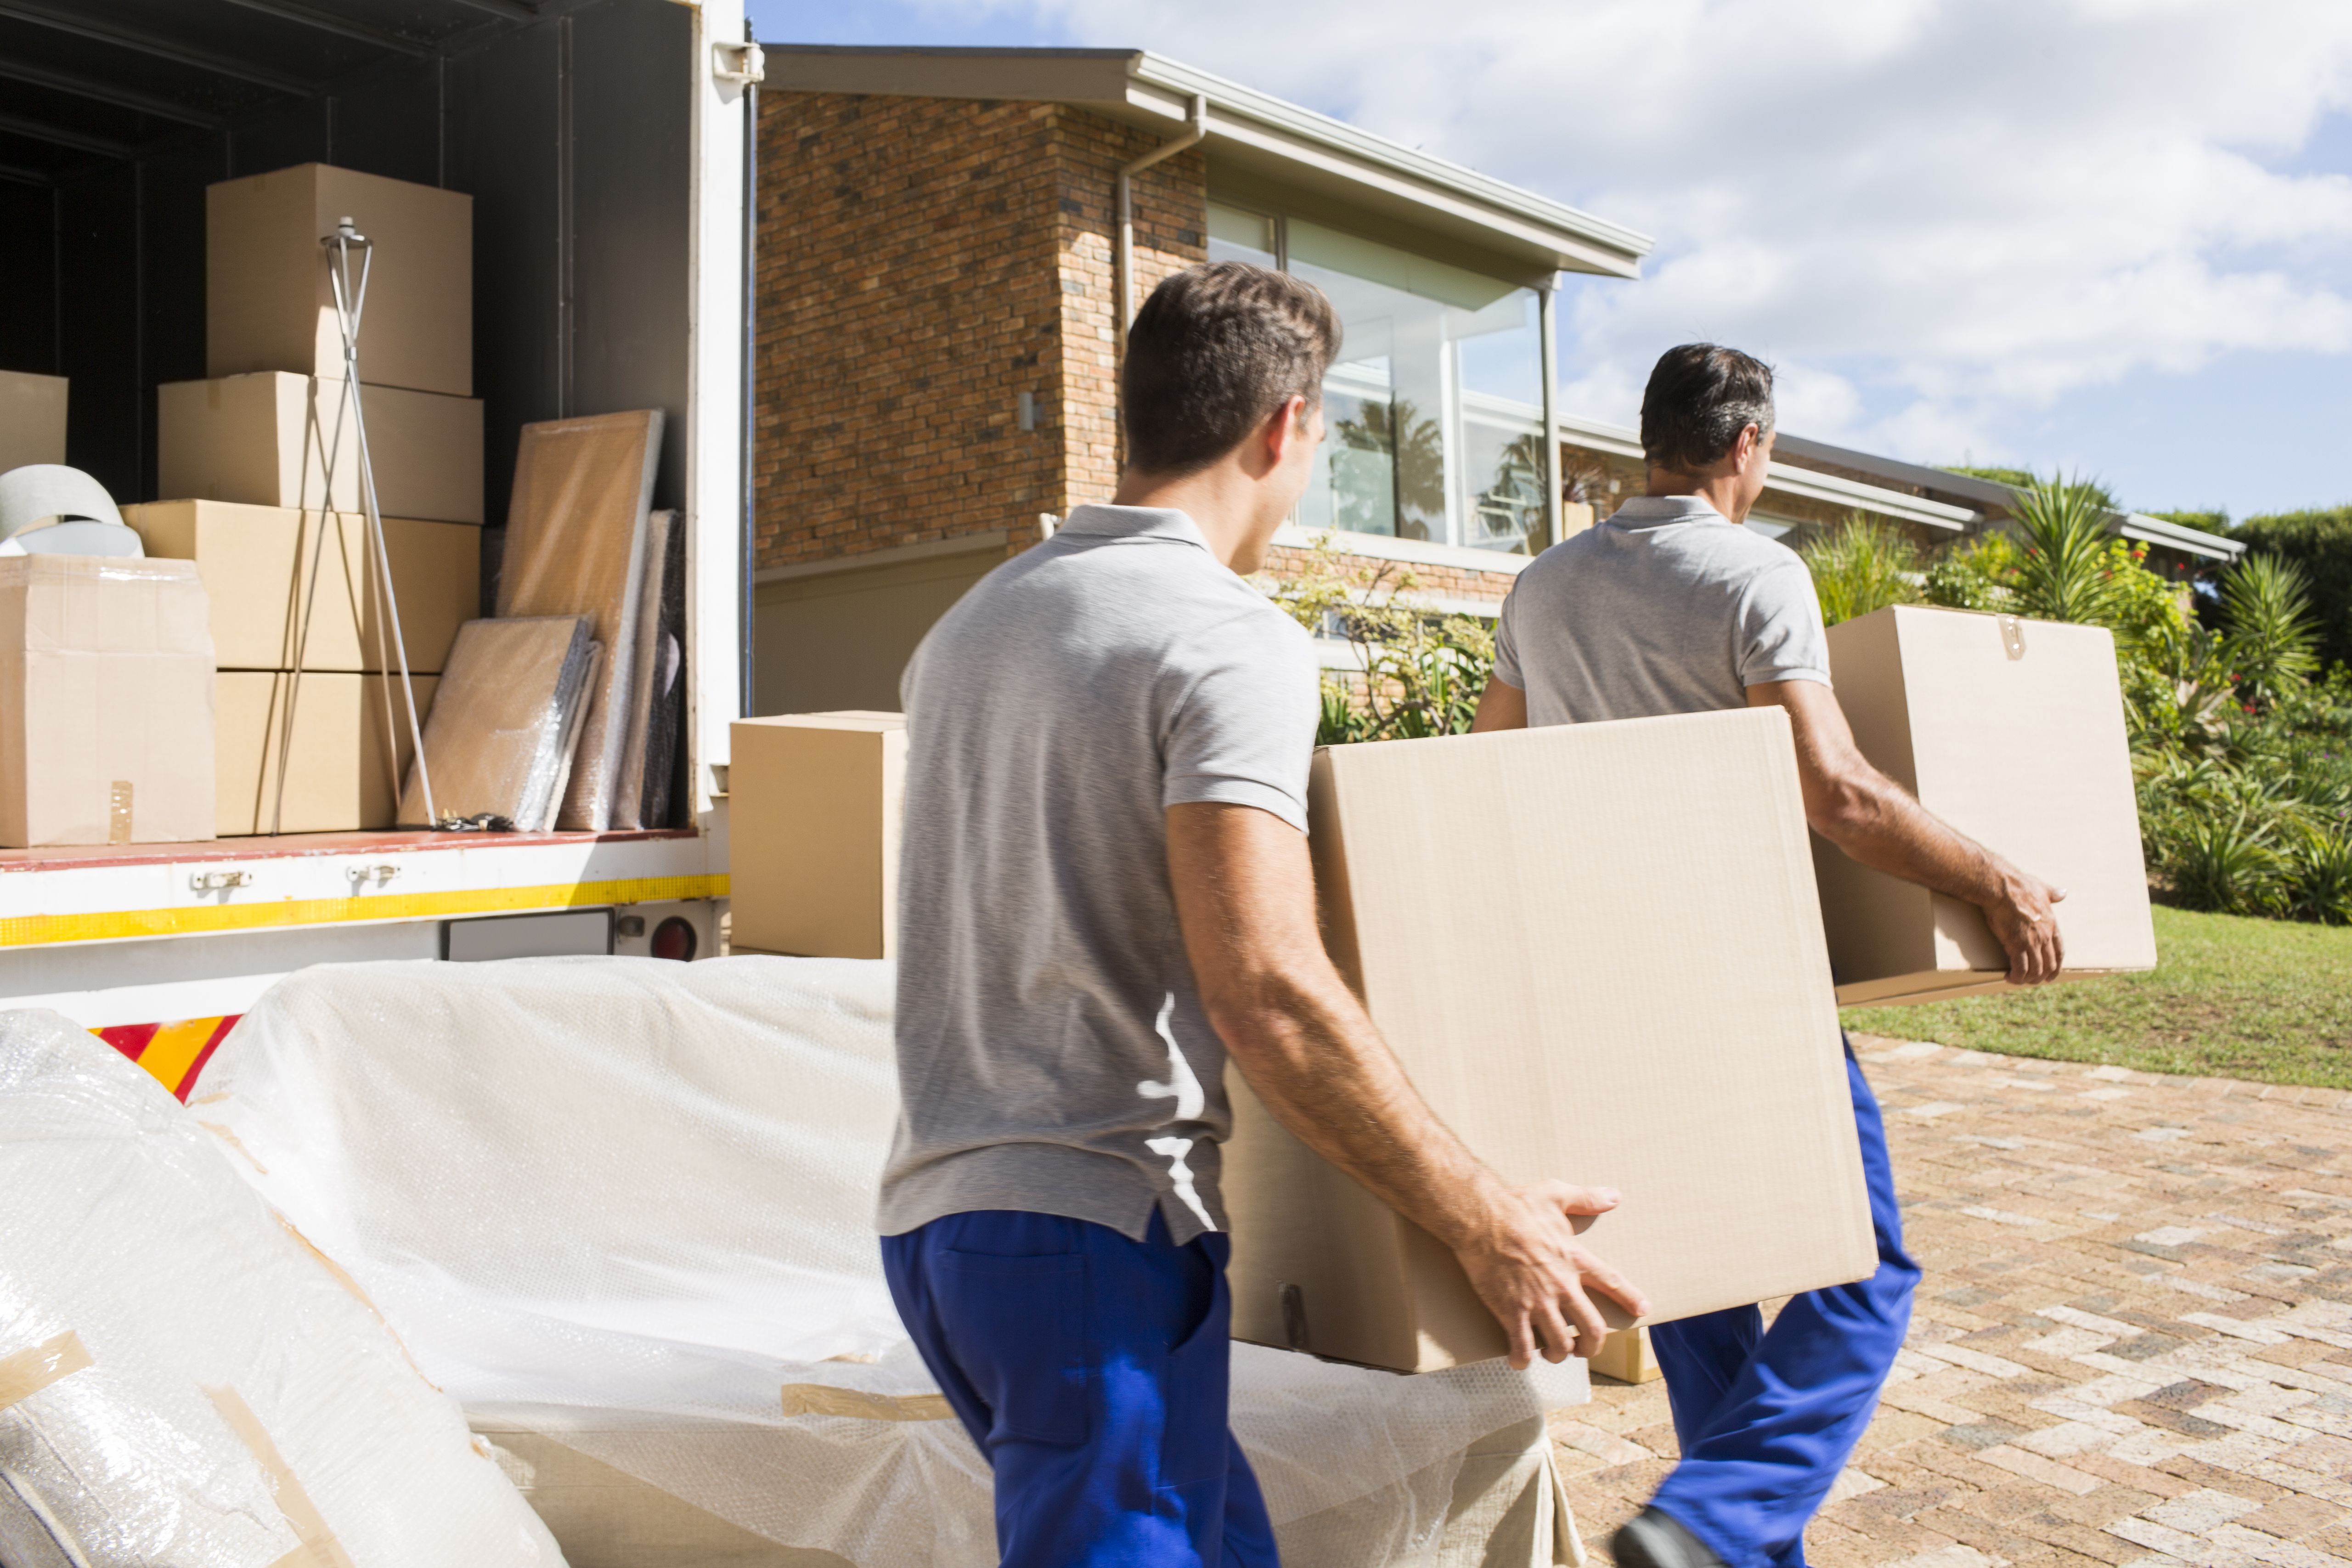 Movers carrying boxes in new house